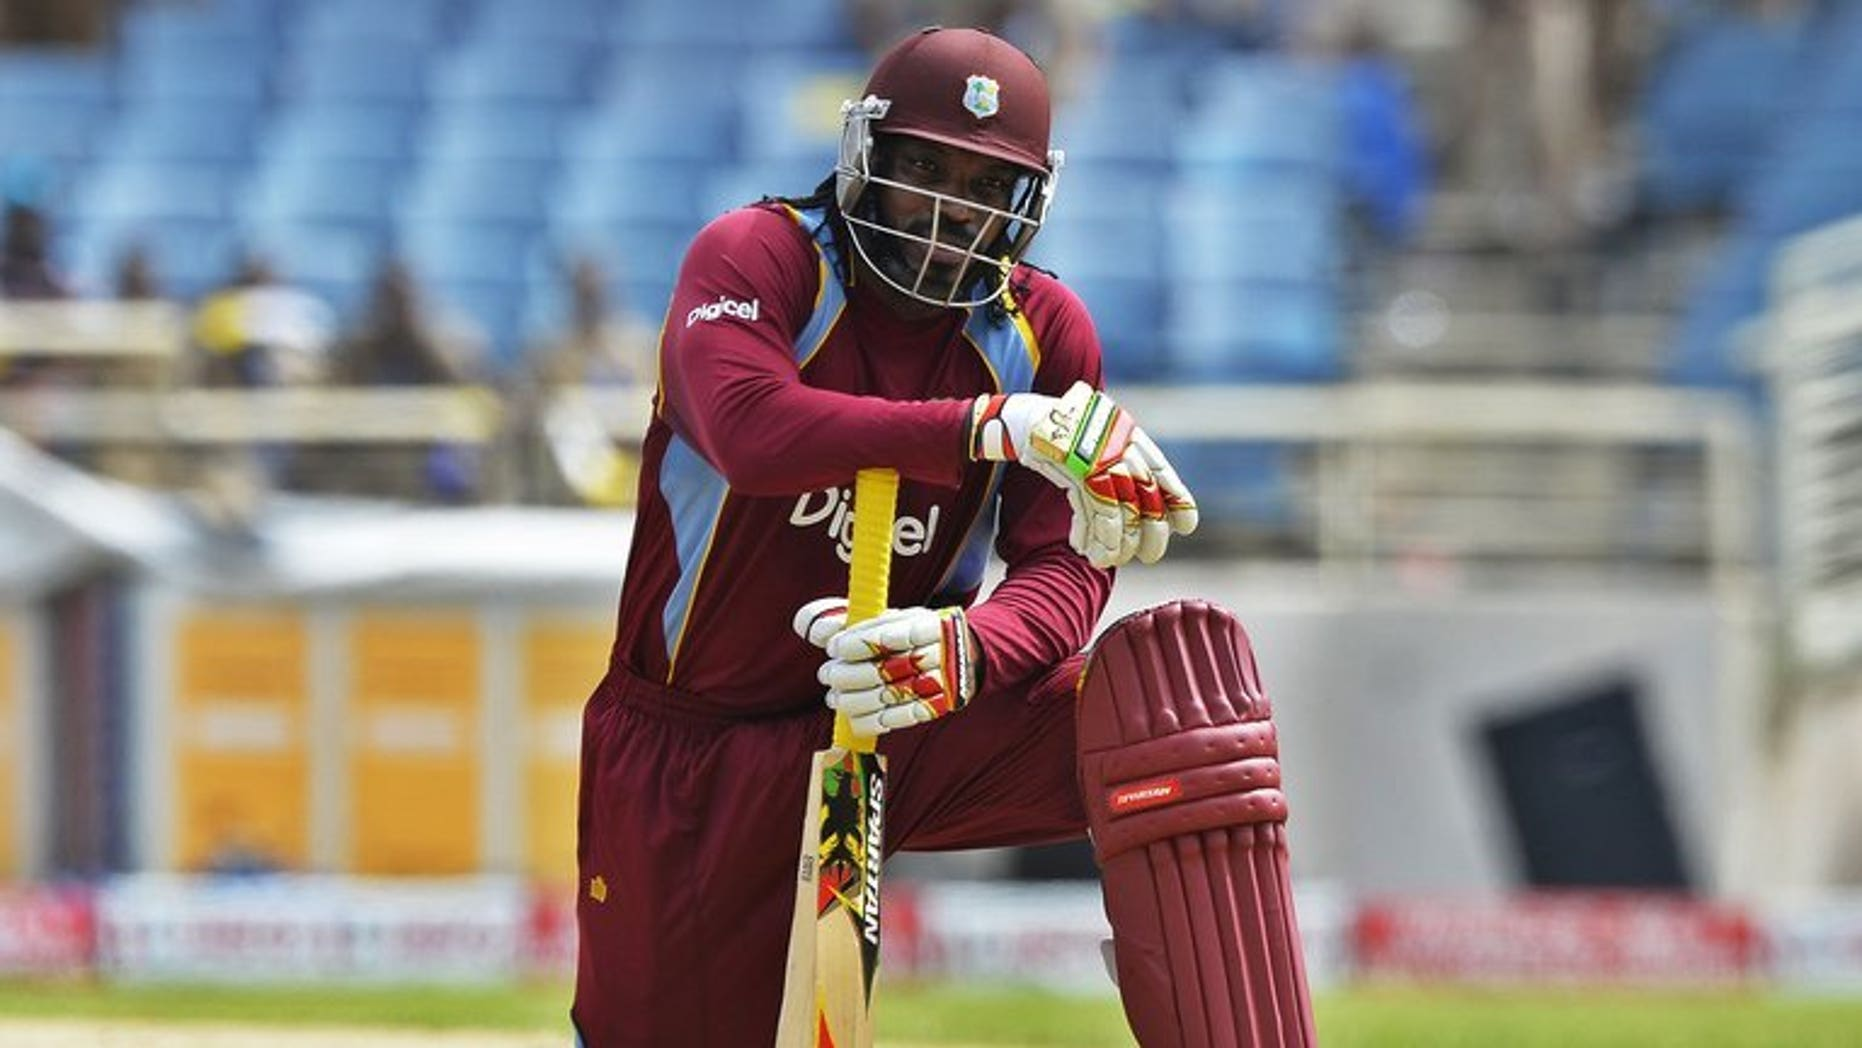 West Indies batsman Chris Gayle in action at Sabina Park in Kingston, on June 28, 2013. Gayle was among a handful of big-name players who played in Sri Lanka's inaugural Twenty20 in 2012.